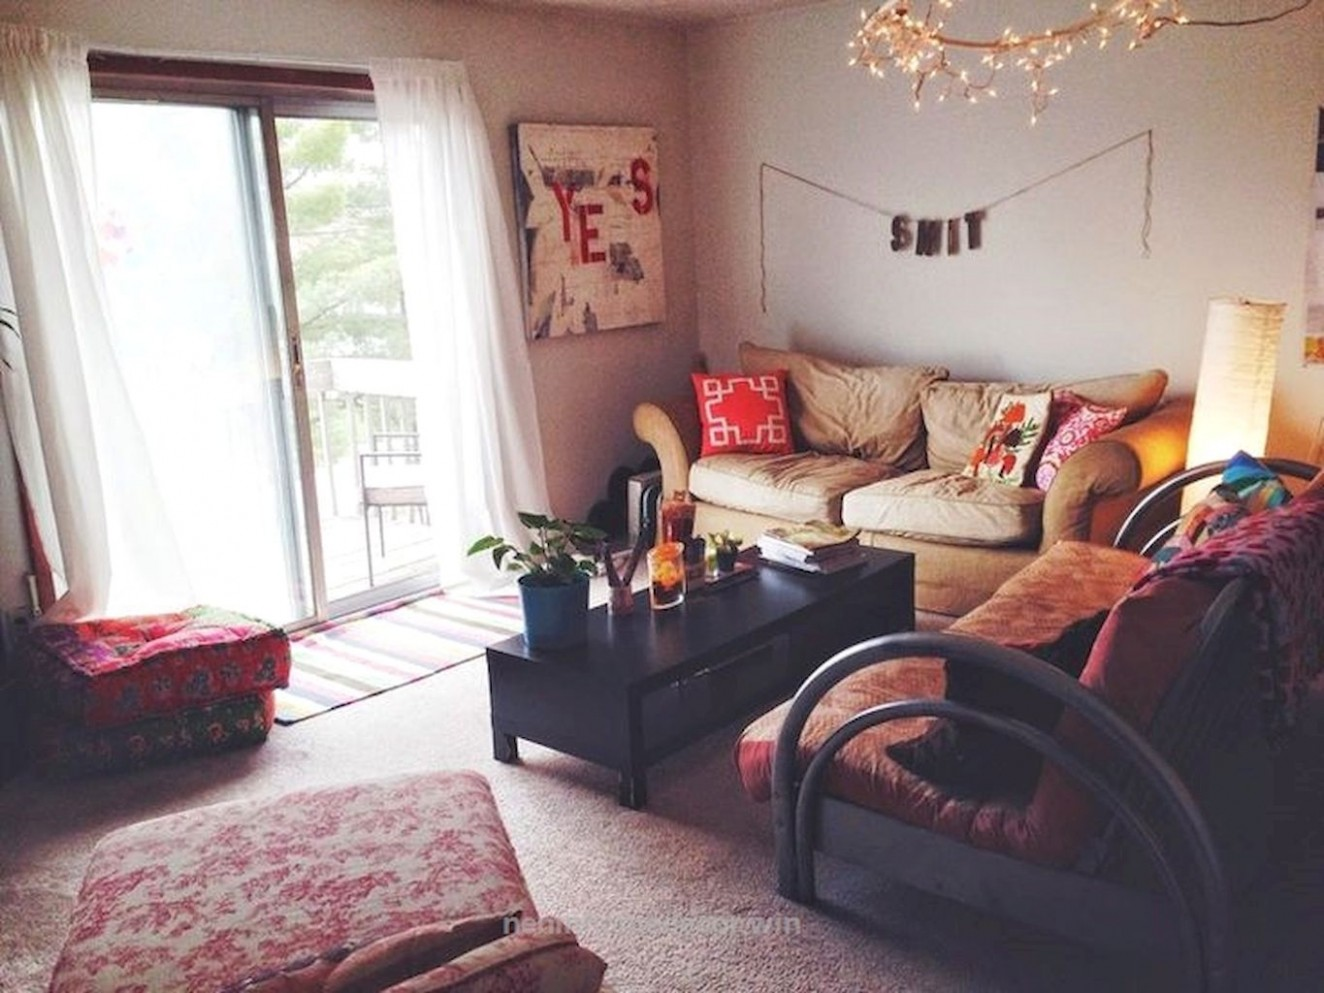 Adorable 12 Clever College Apartment Decorating Ideas on A Budget  - Apartment Decorating Ideas For Students